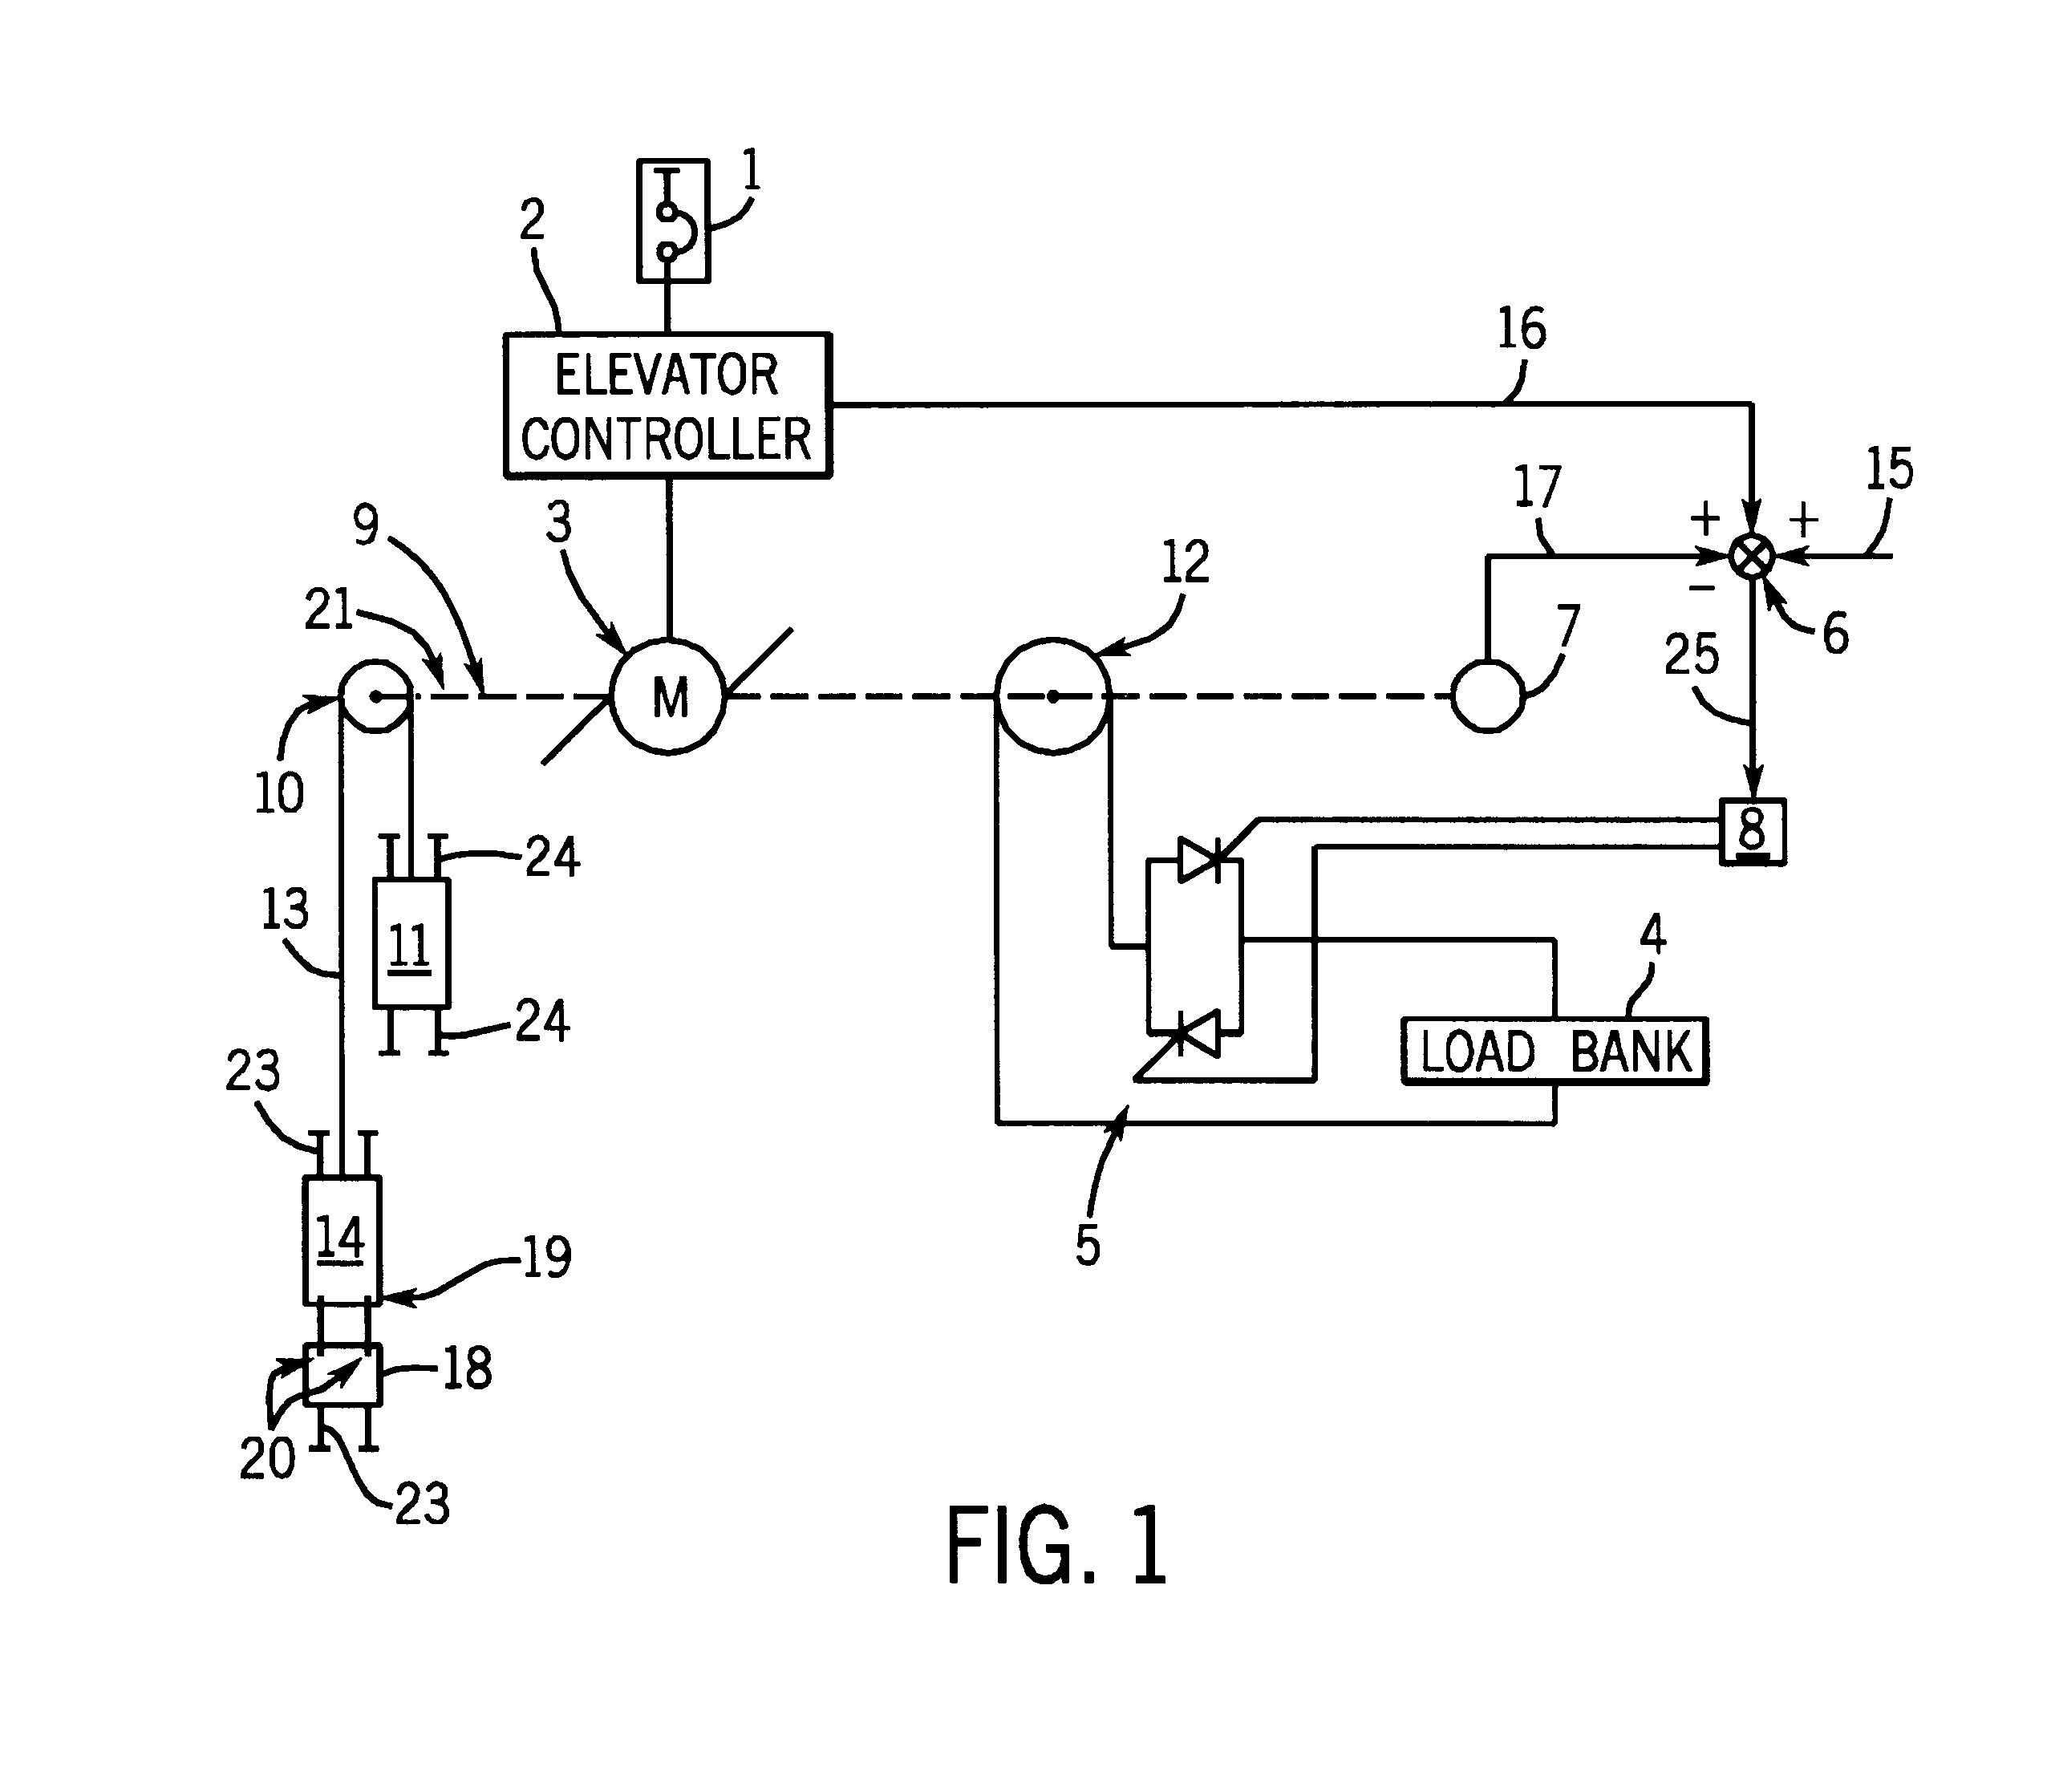 Patent US Self generating elevator emergency power source